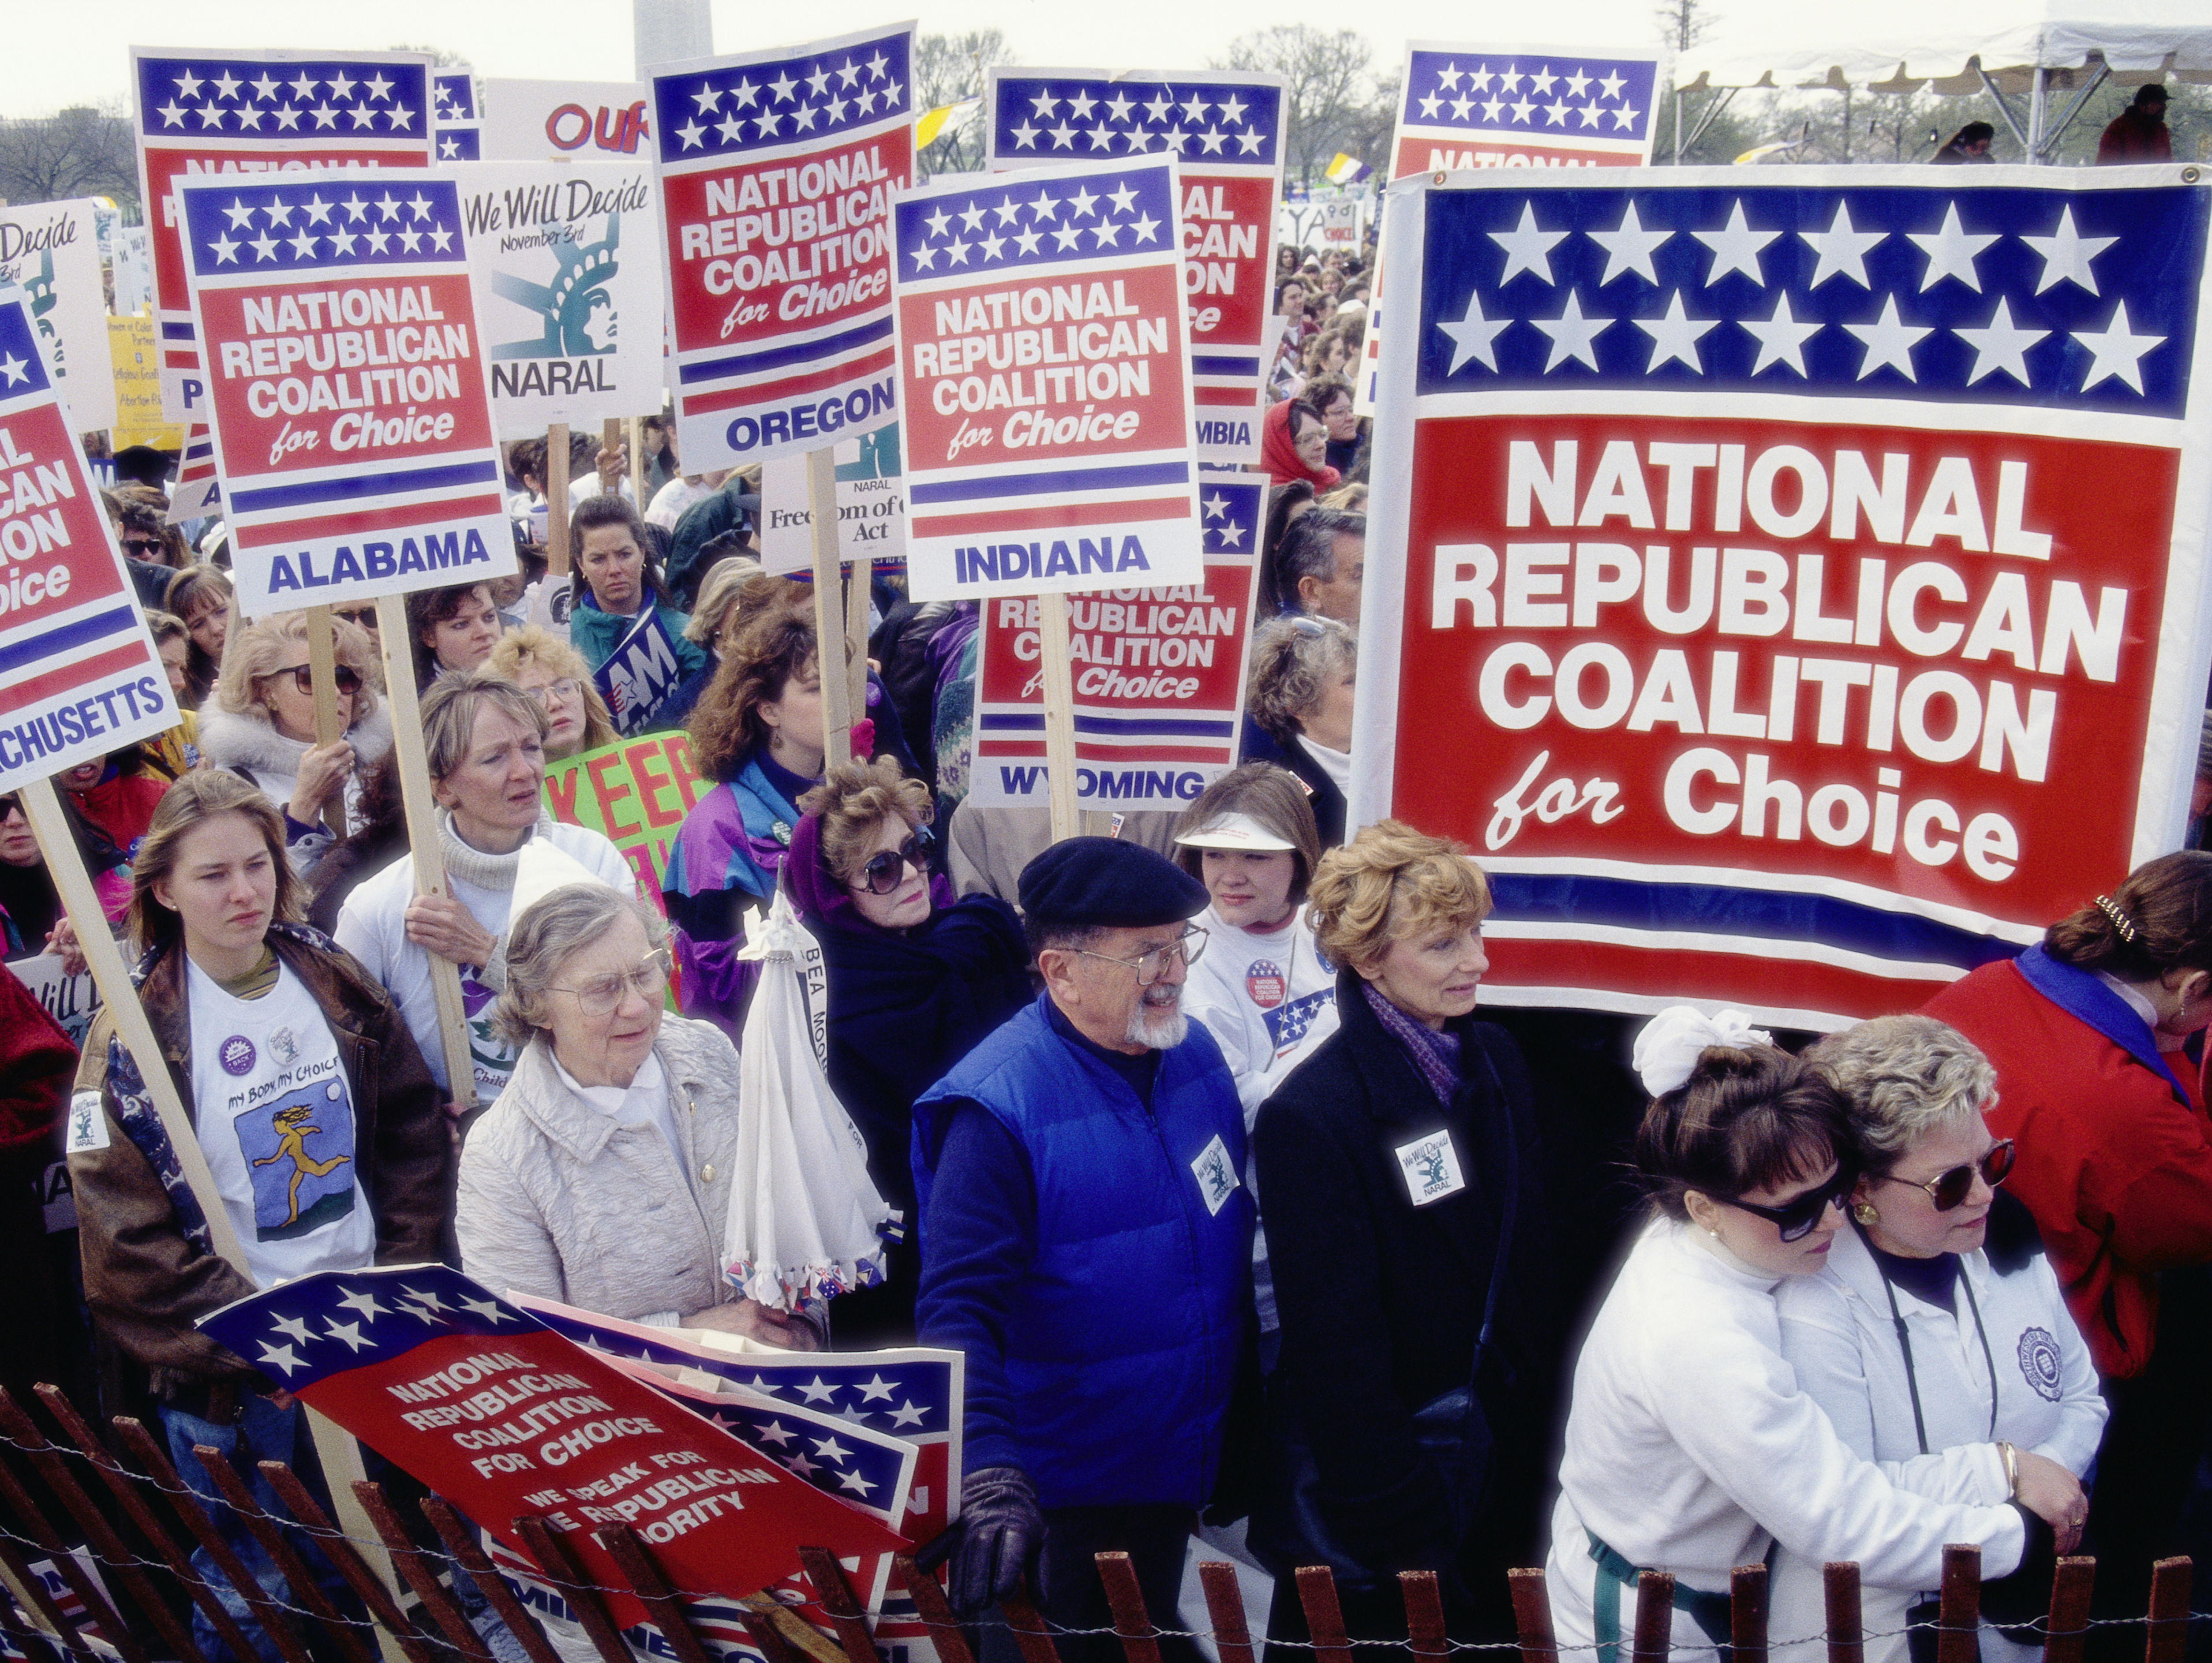 National Republican Coalition for Choice Demonstration